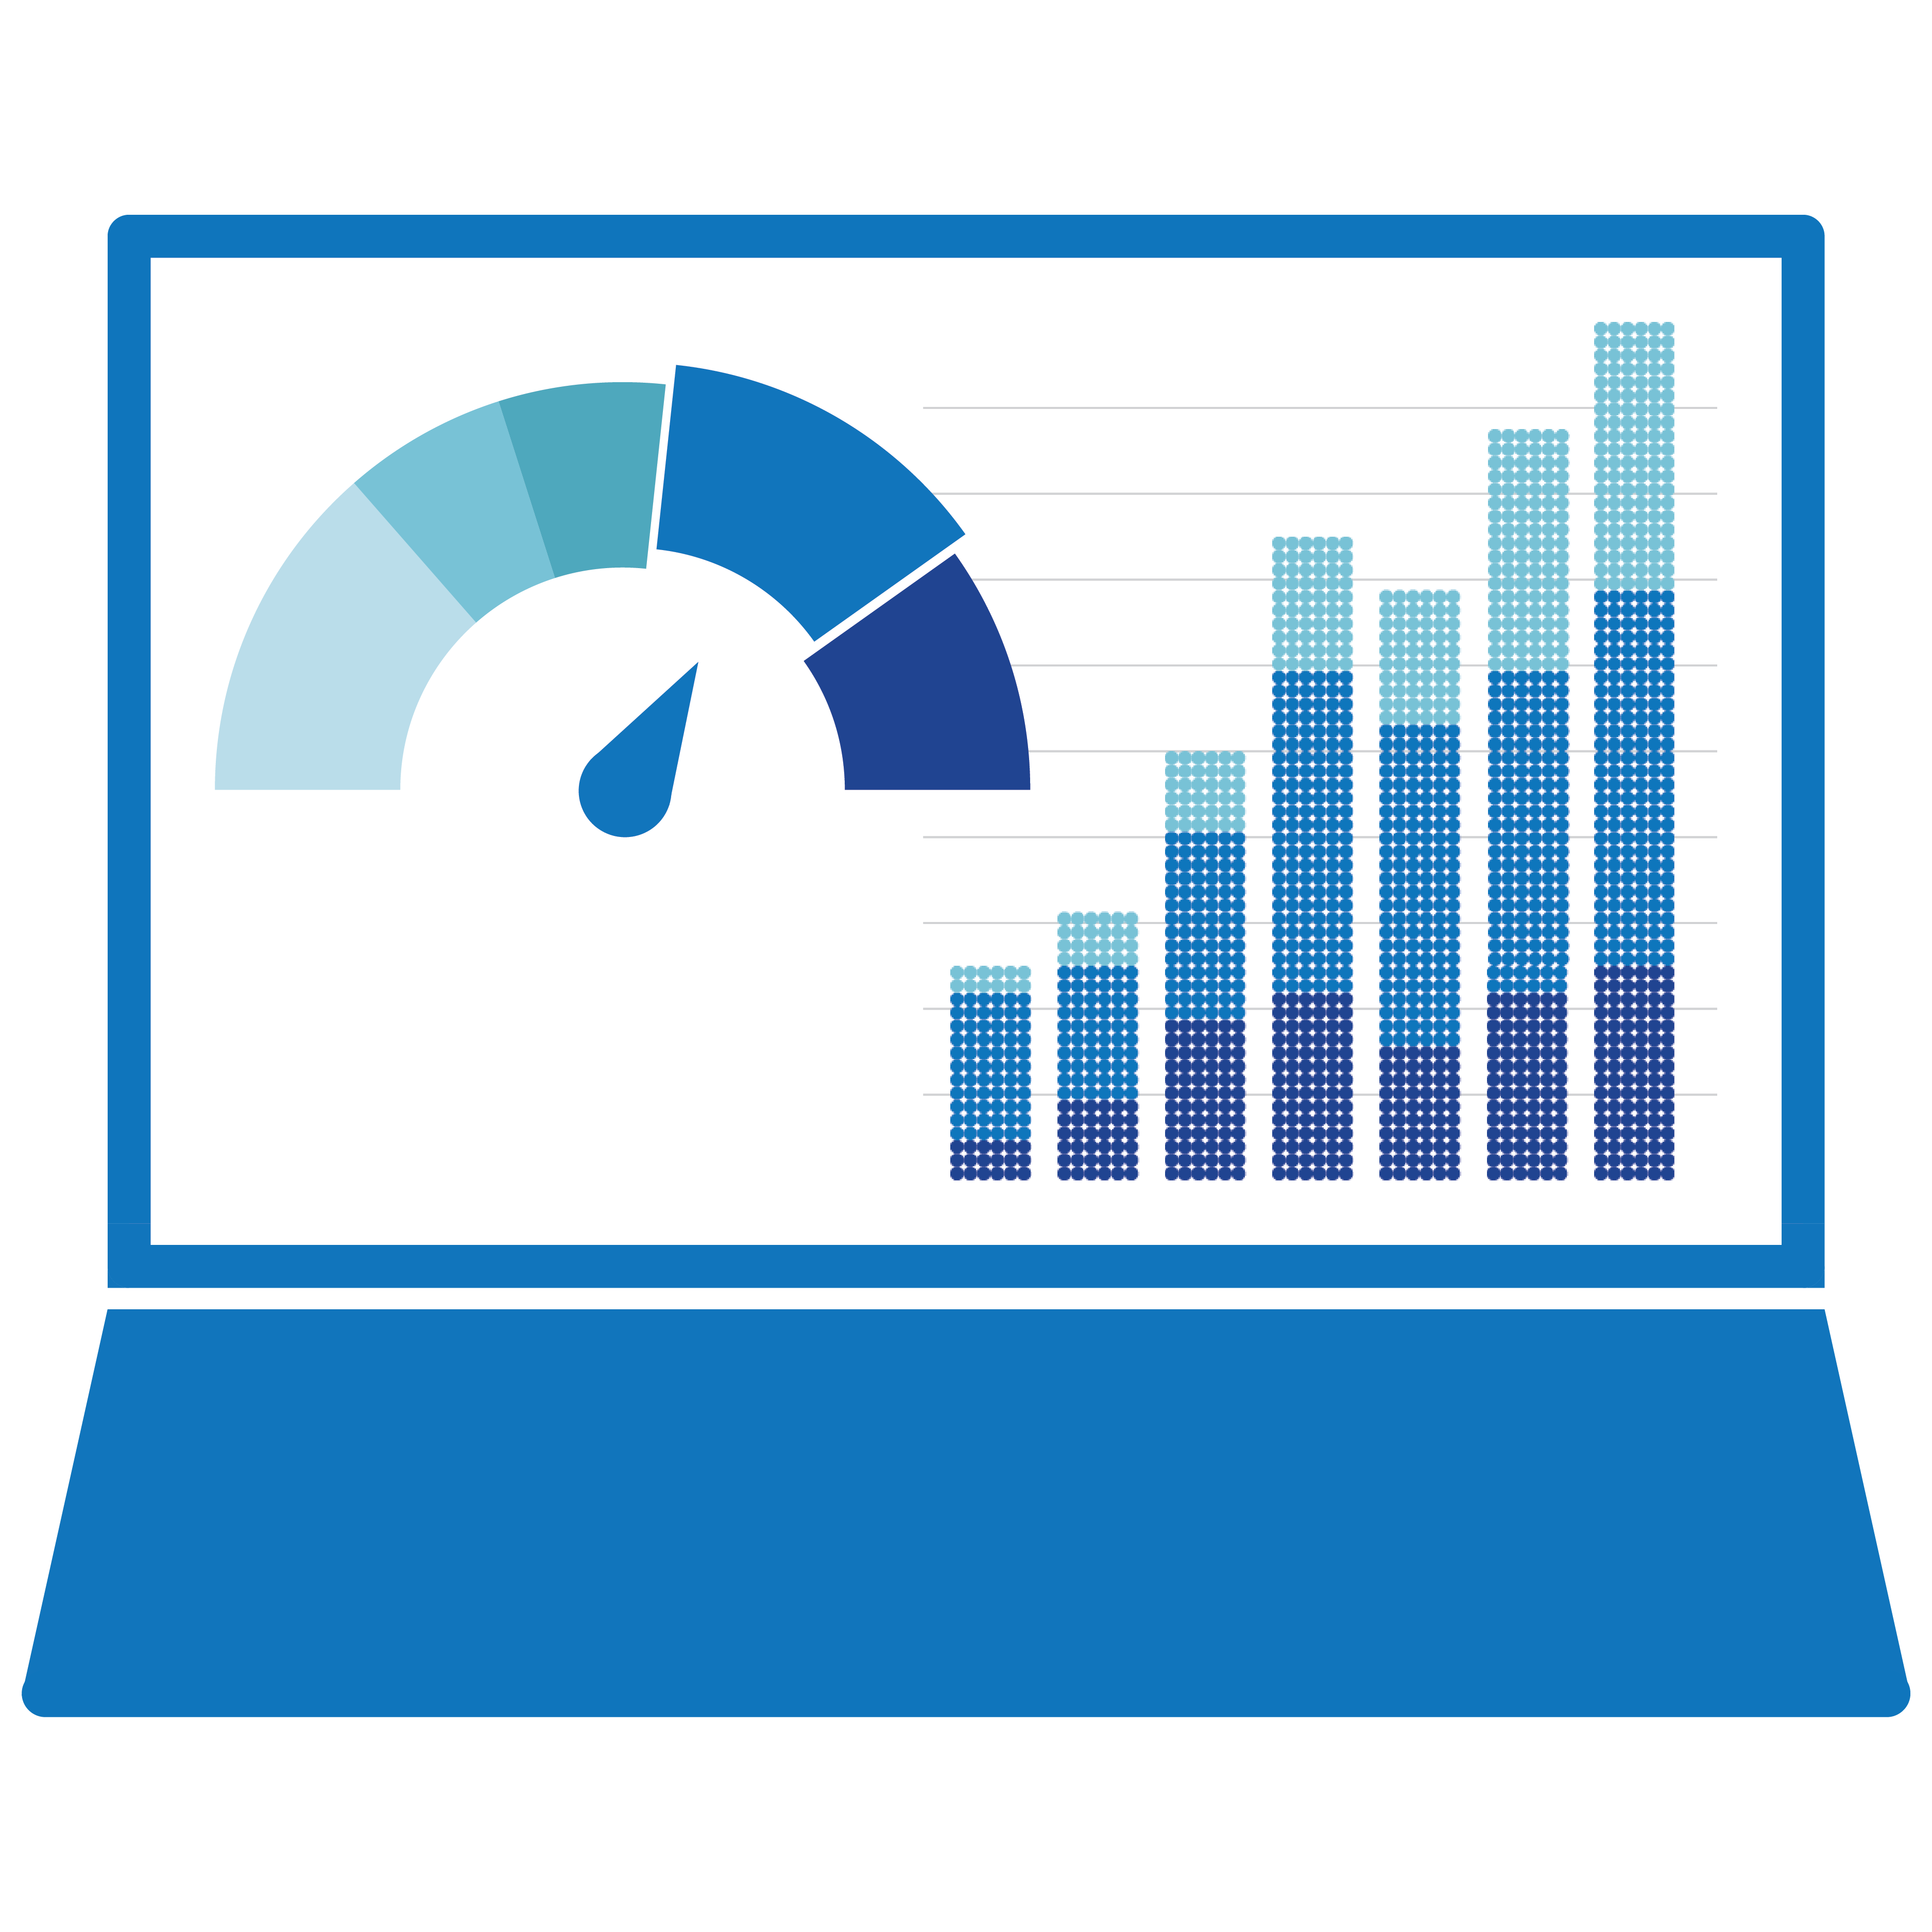 Data clipart data visualization. Catalist products visualizations reports